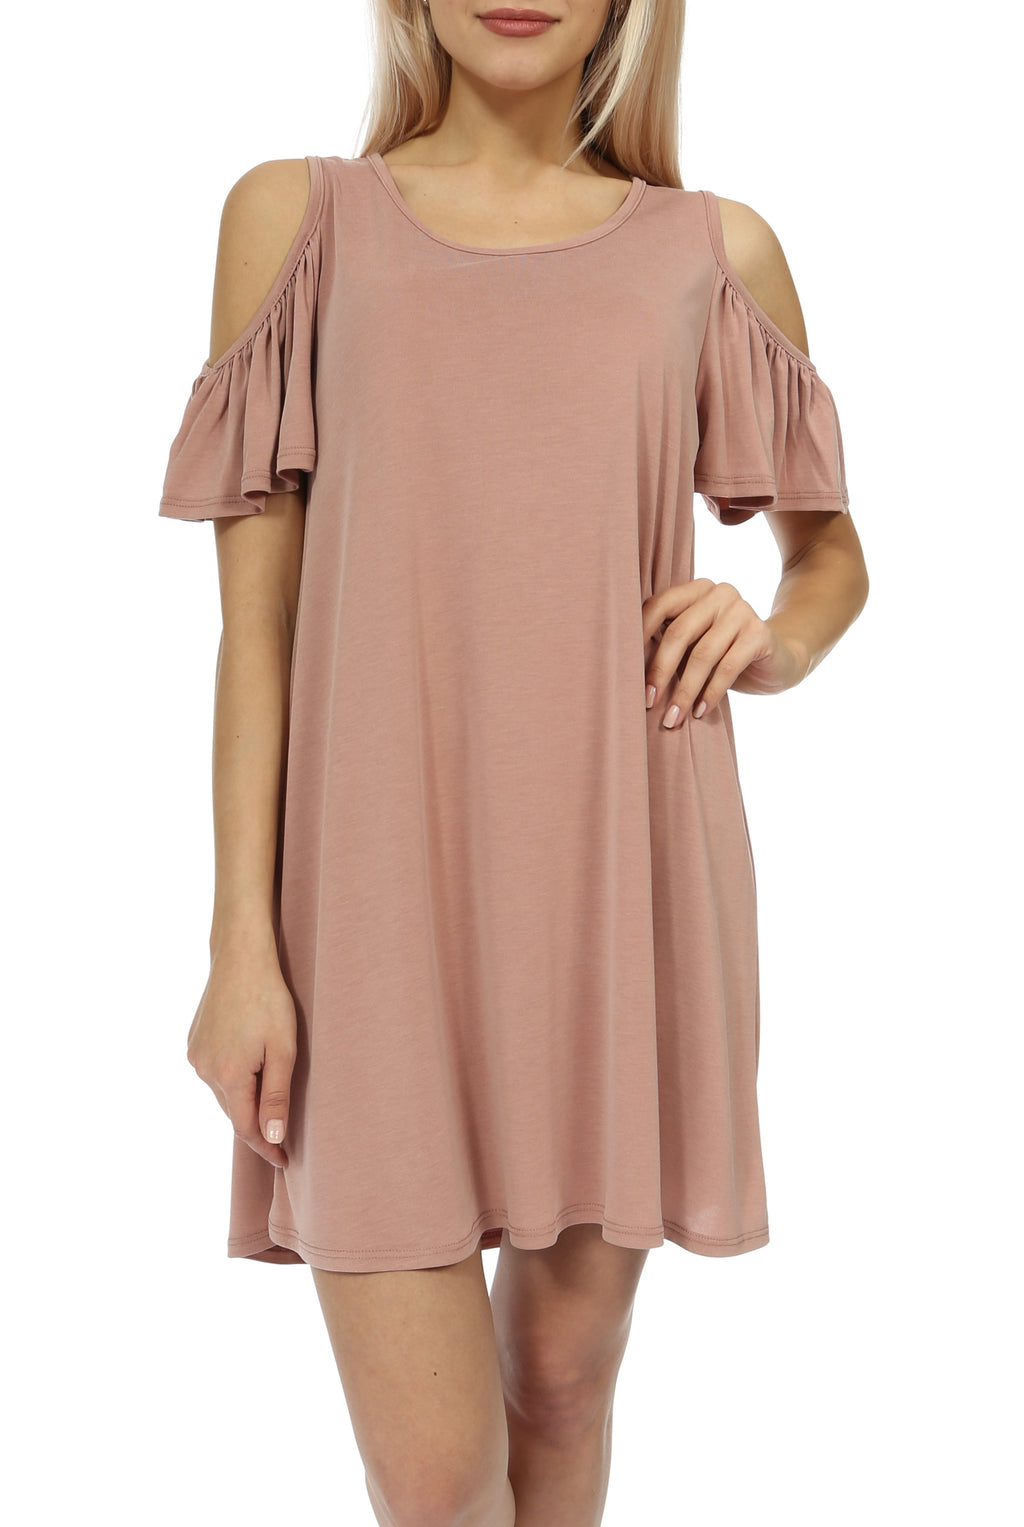 Teeze Me | Short Sleeve Scoop Neck Cold Shoulder Swing T-Shirt Dress | Blush